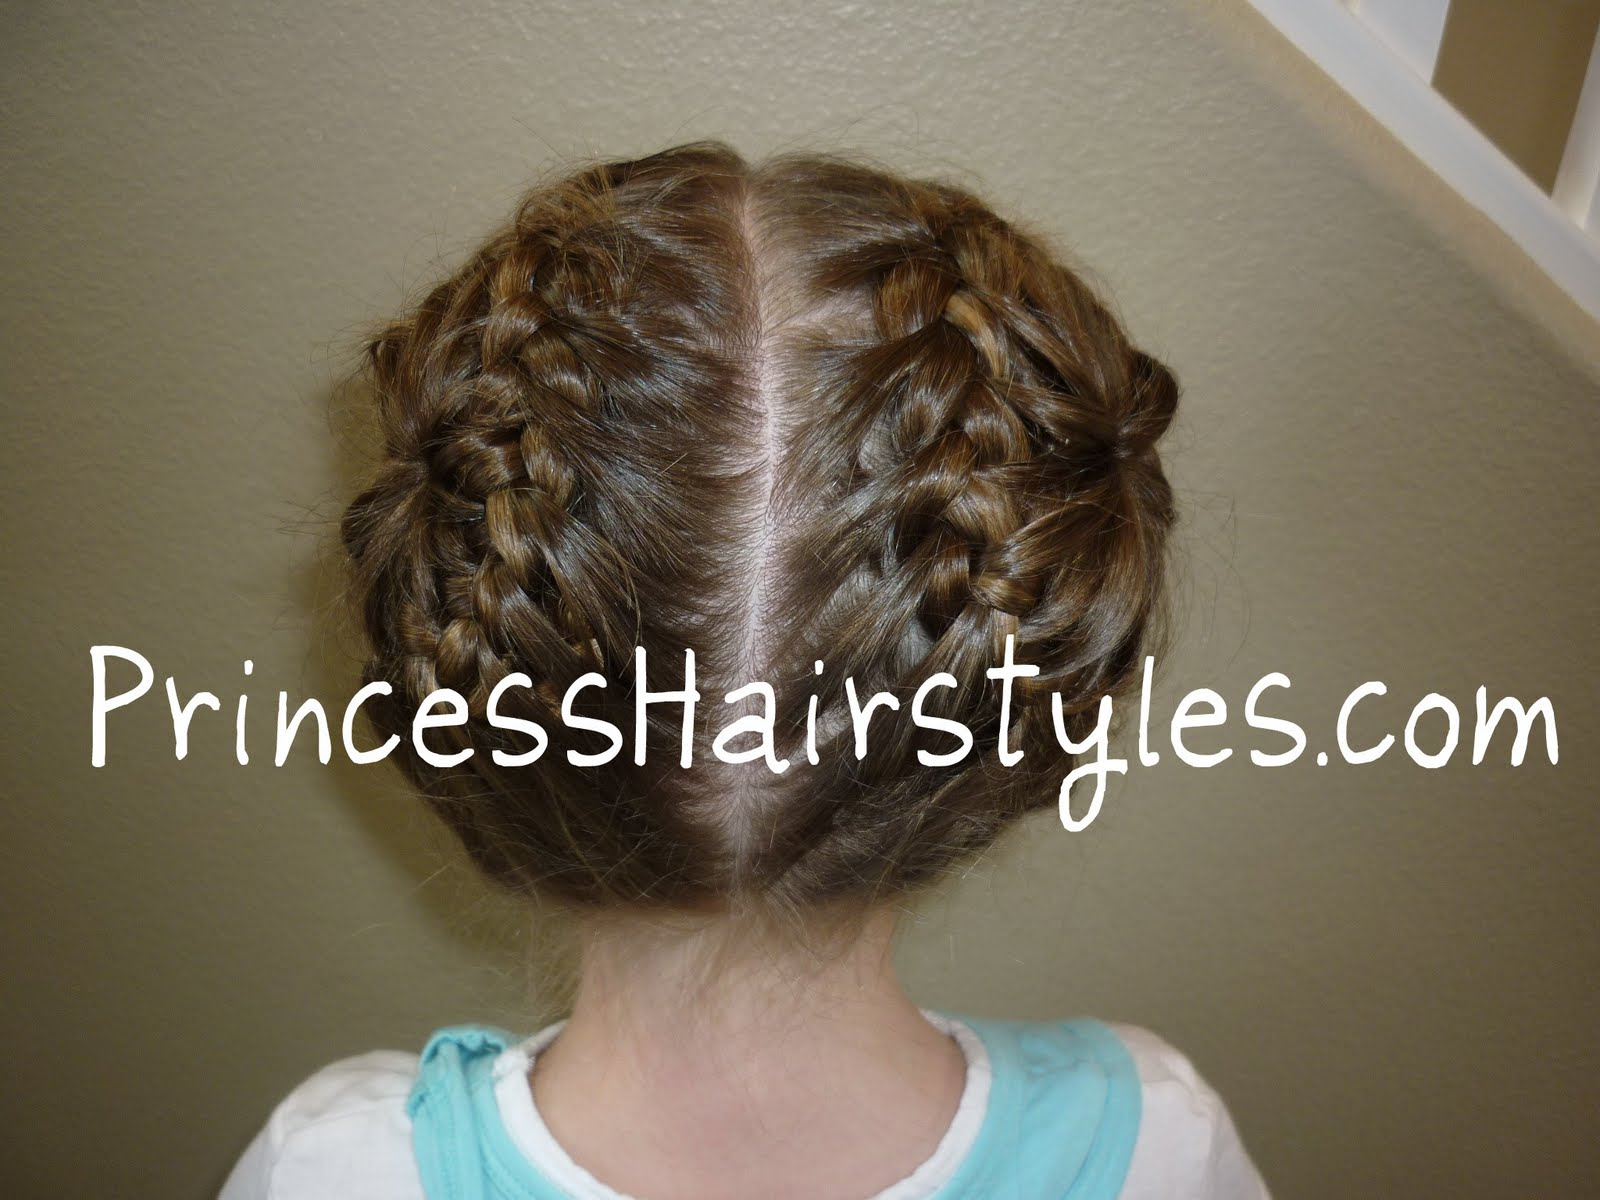 Love Cute Hairstyles Feel Free To Snag And Share